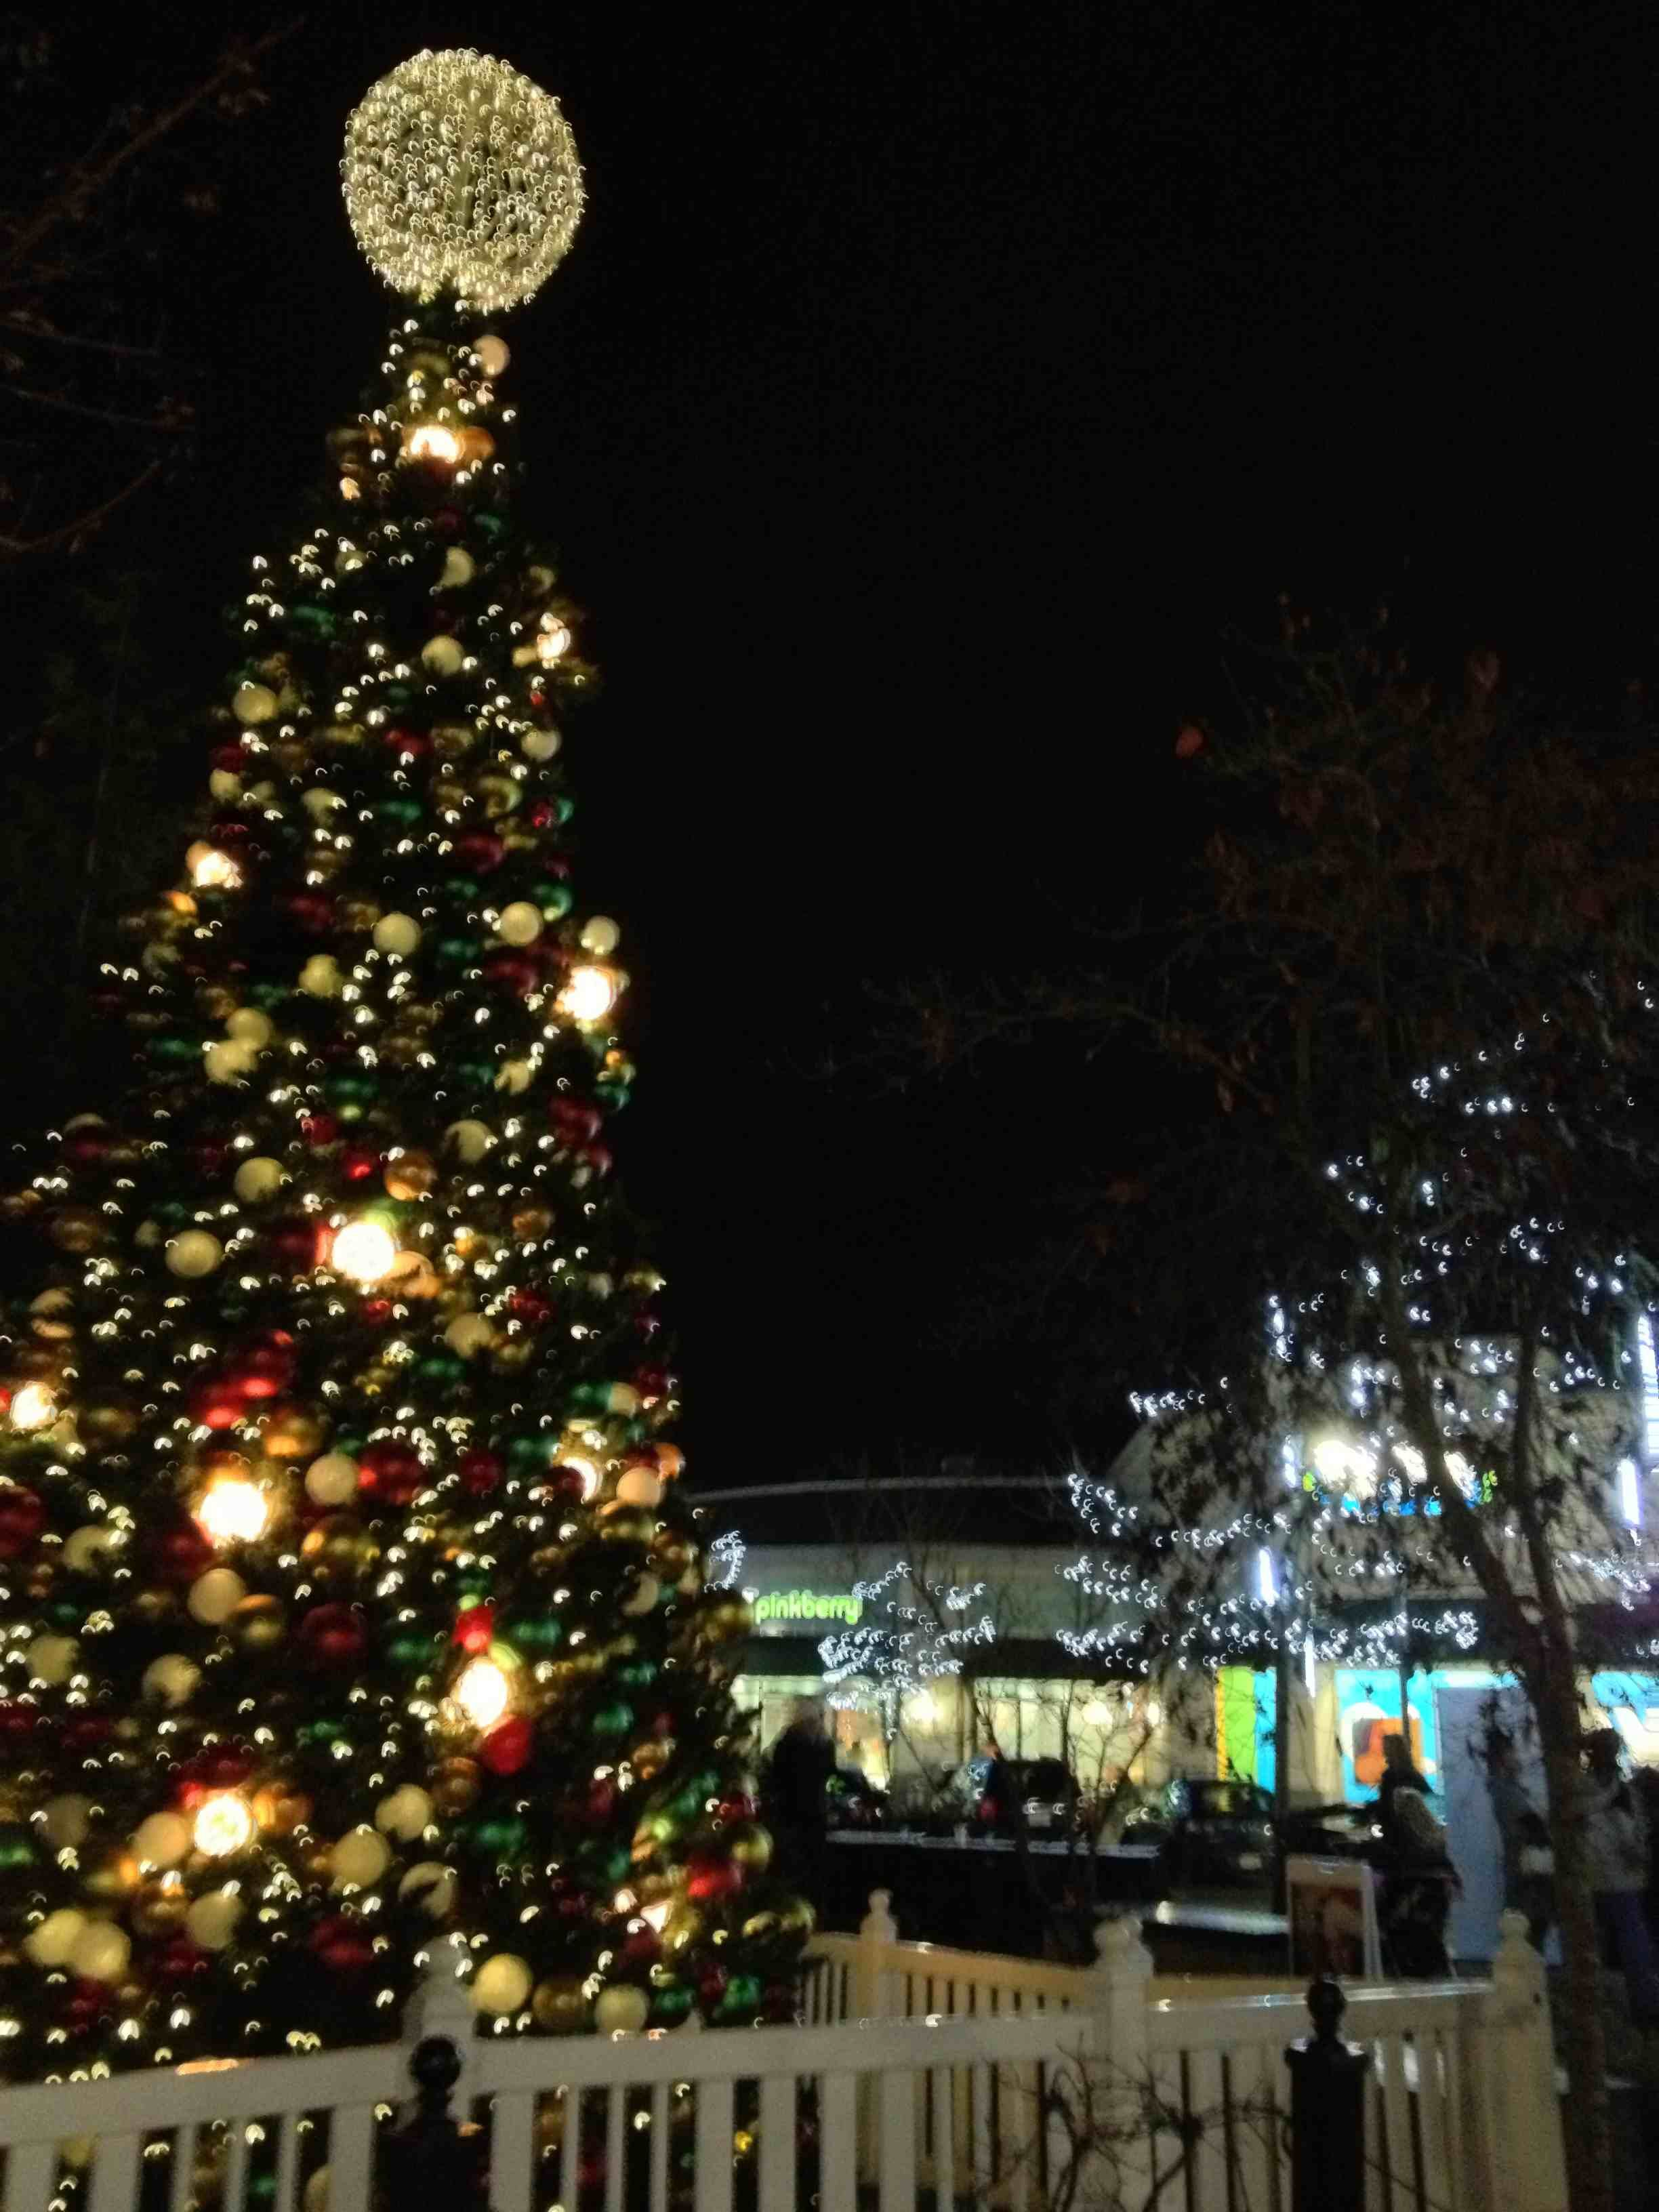 The Christmas Tree At Park Royal Village